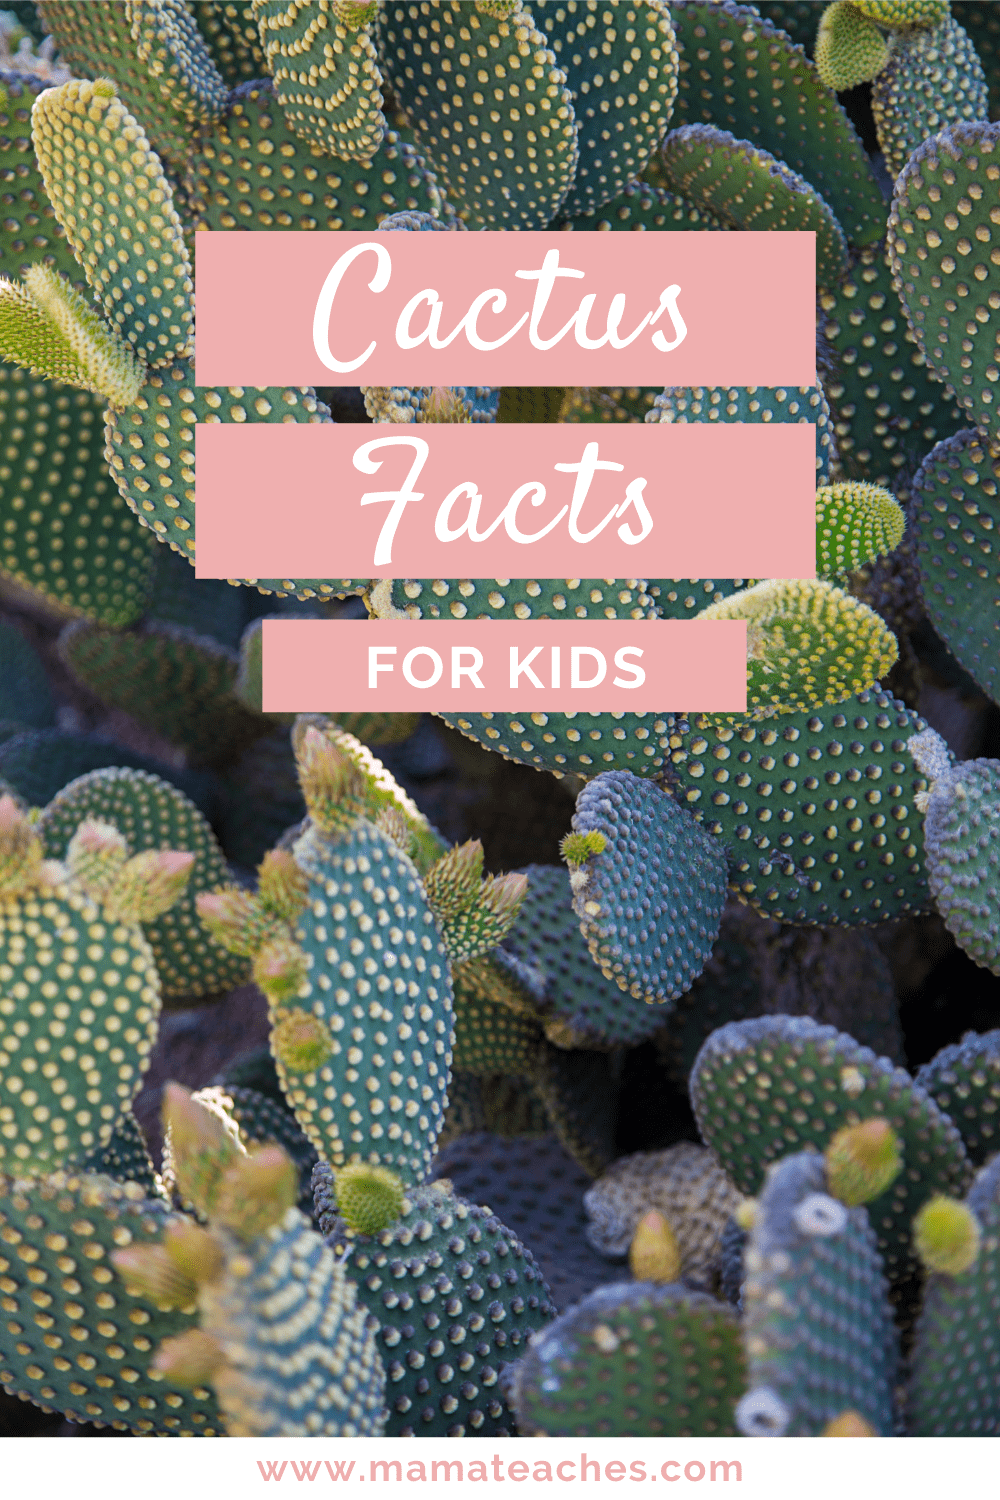 Cactus Facts for Kids